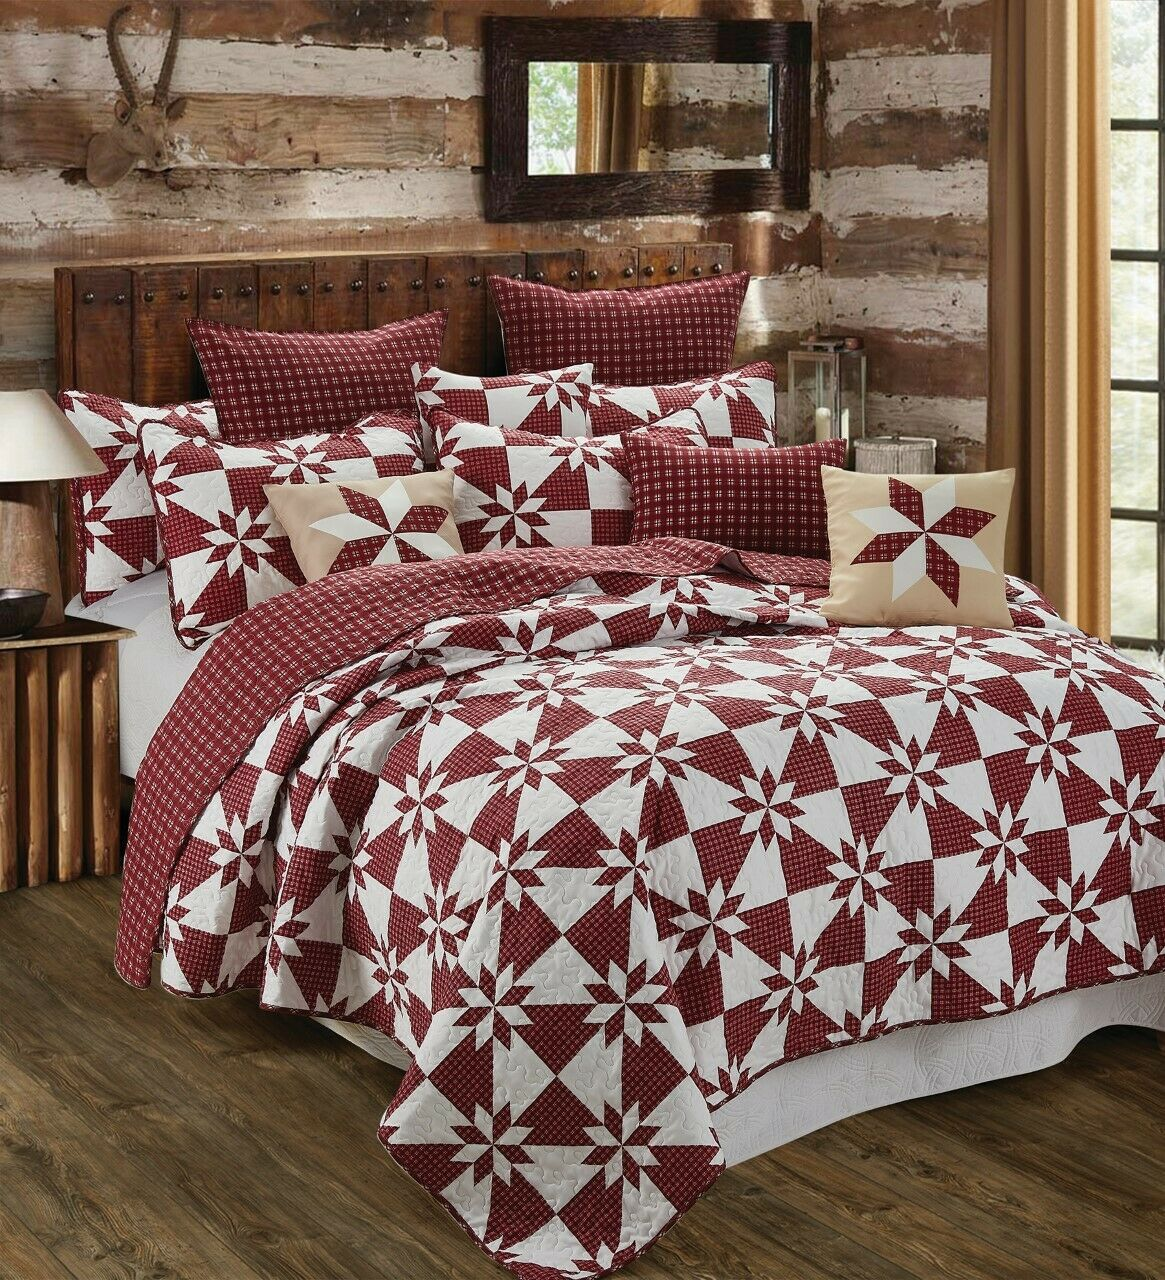 HUNTERS STAR rot Weiß Full Queen QUILT SET   COUNTRY FARMHOUSE STARBURST